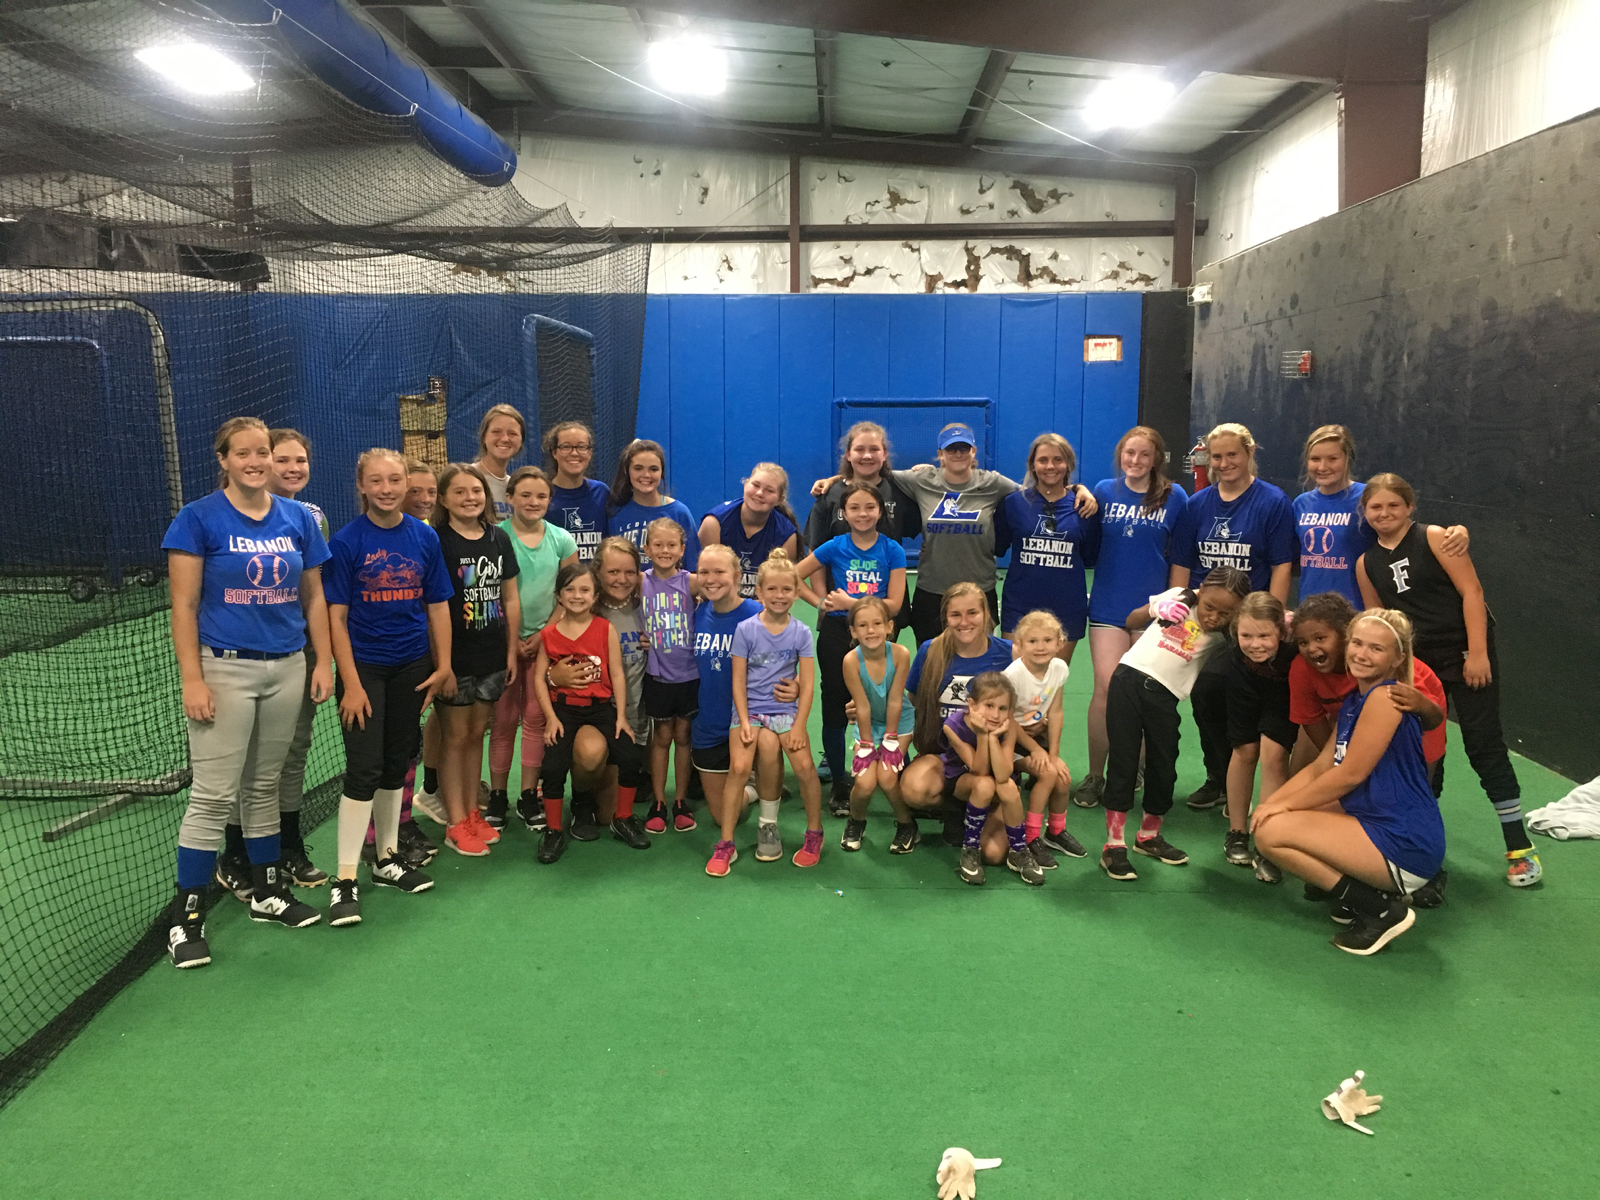 Softball Summer Camp Day 1 pictures– Day 2 of Softball Camp Today 9am-11am